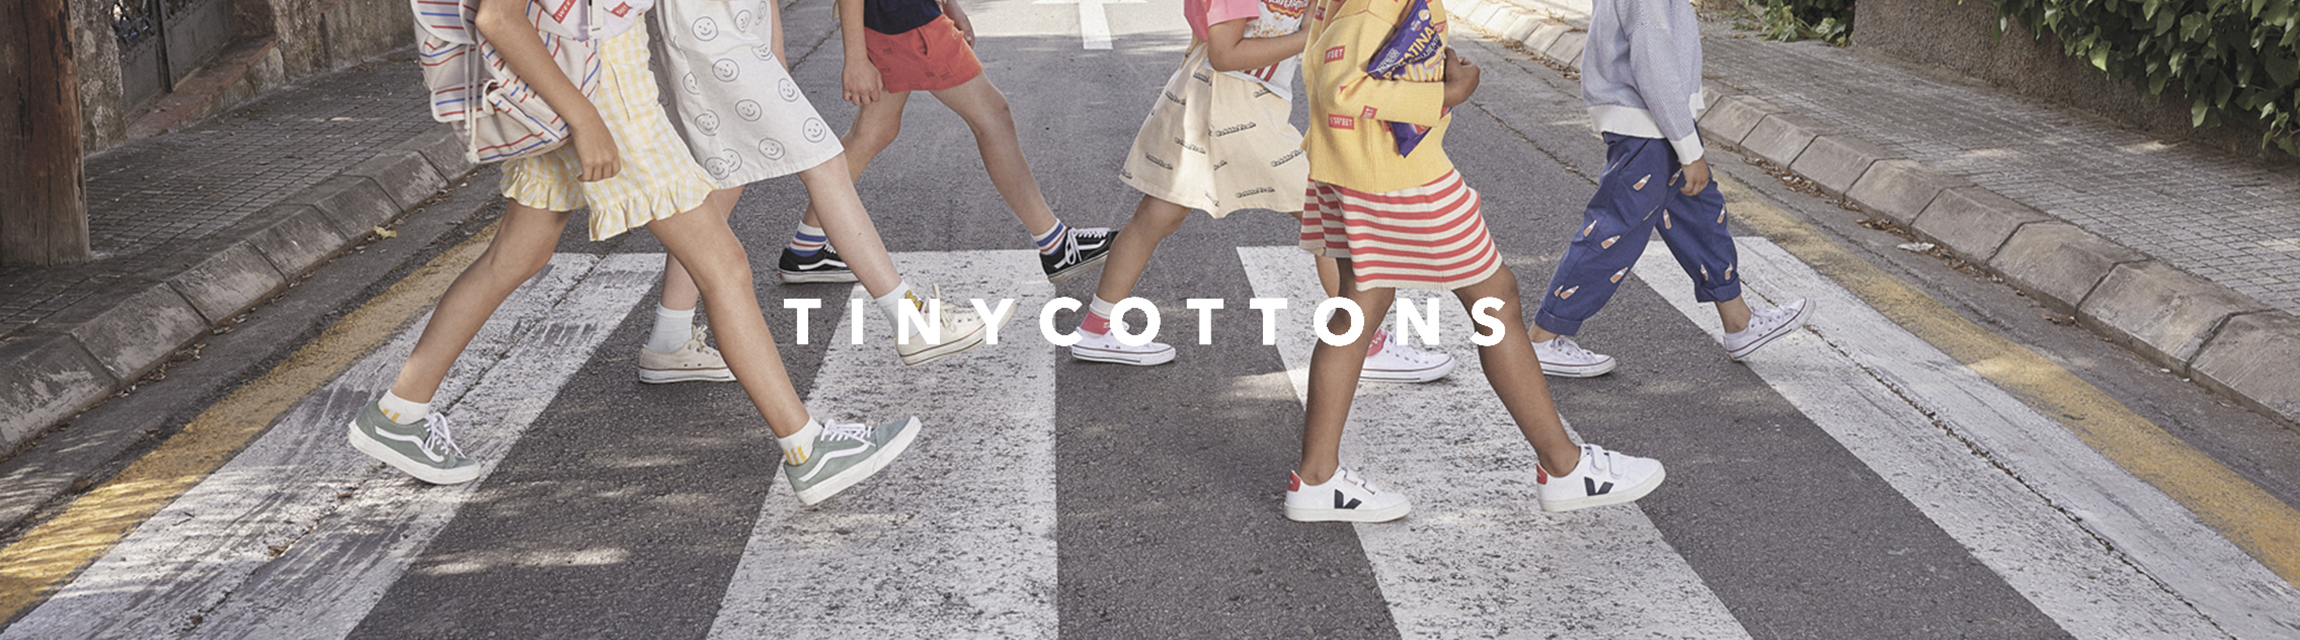 19ss tinycottons